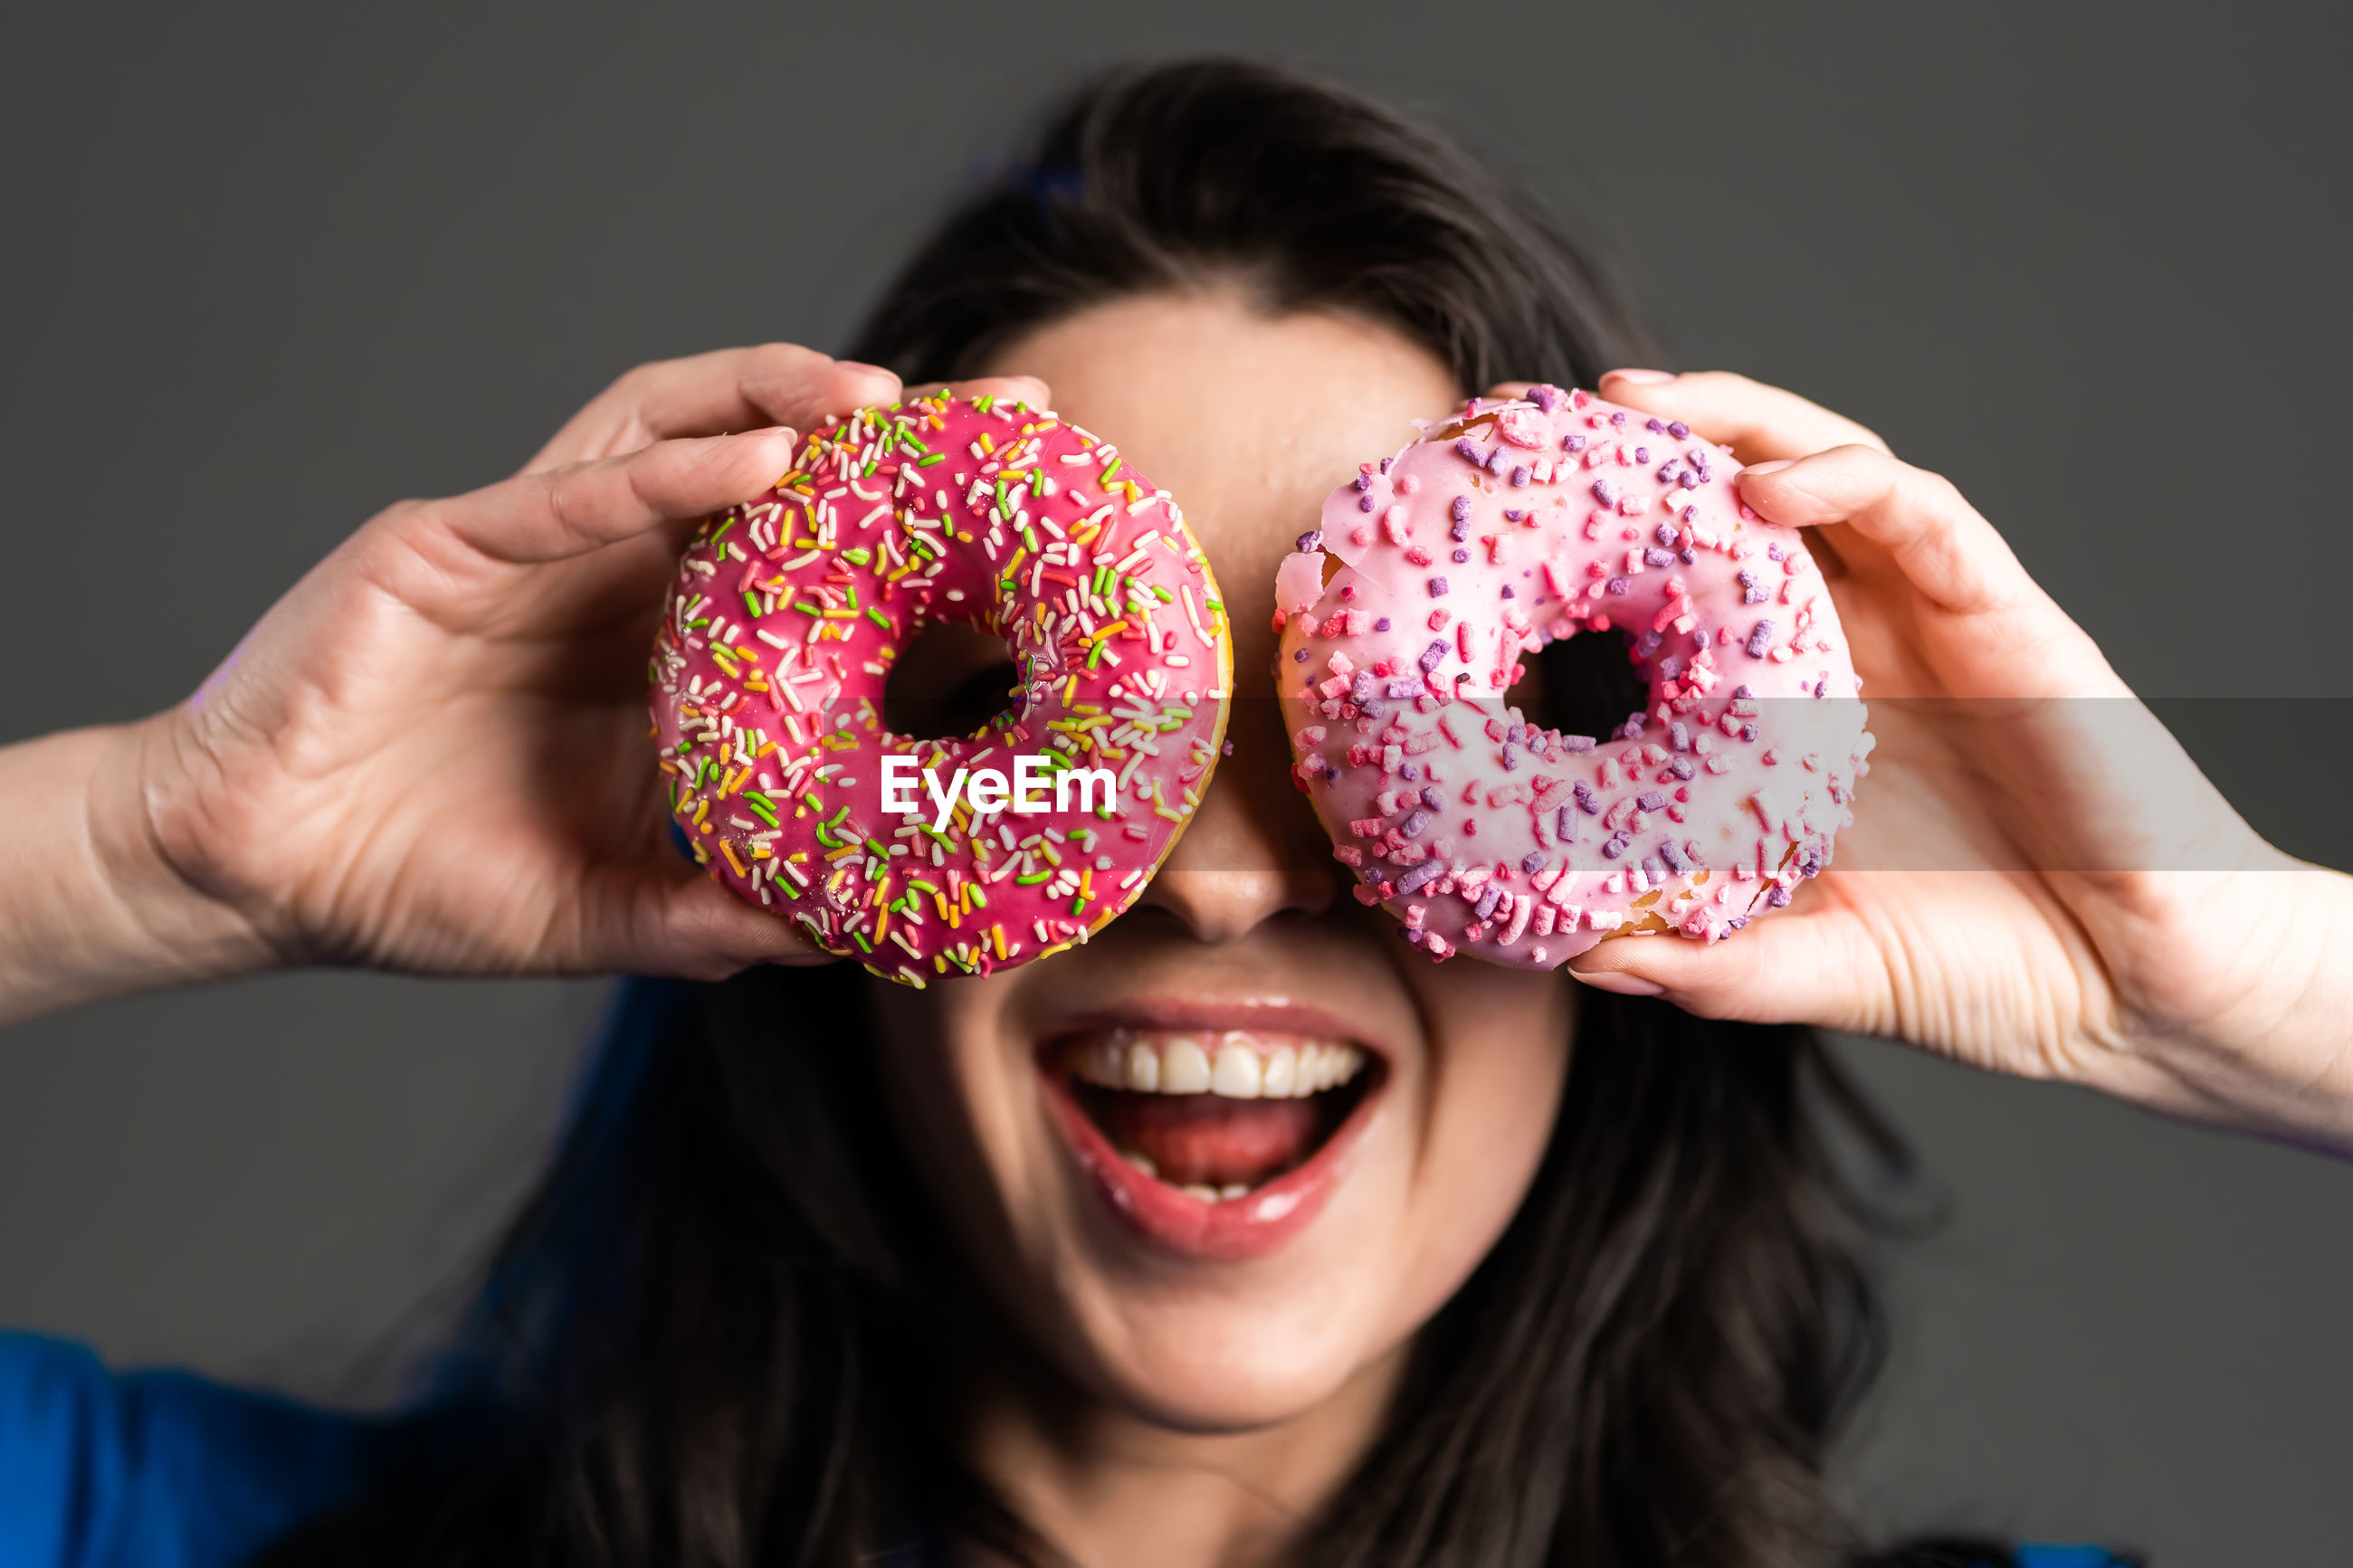 Woman holding donuts against gray background